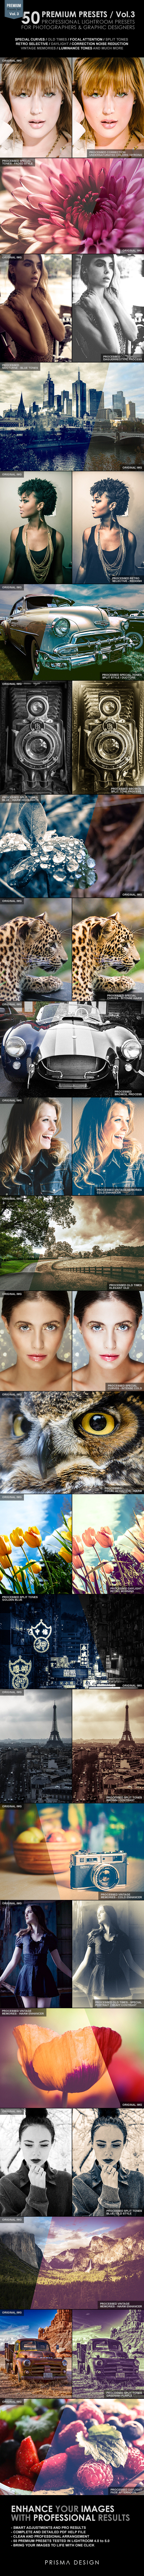 50 Premium Lightroom Presets / Vol.3 - Portrait Lightroom Presets